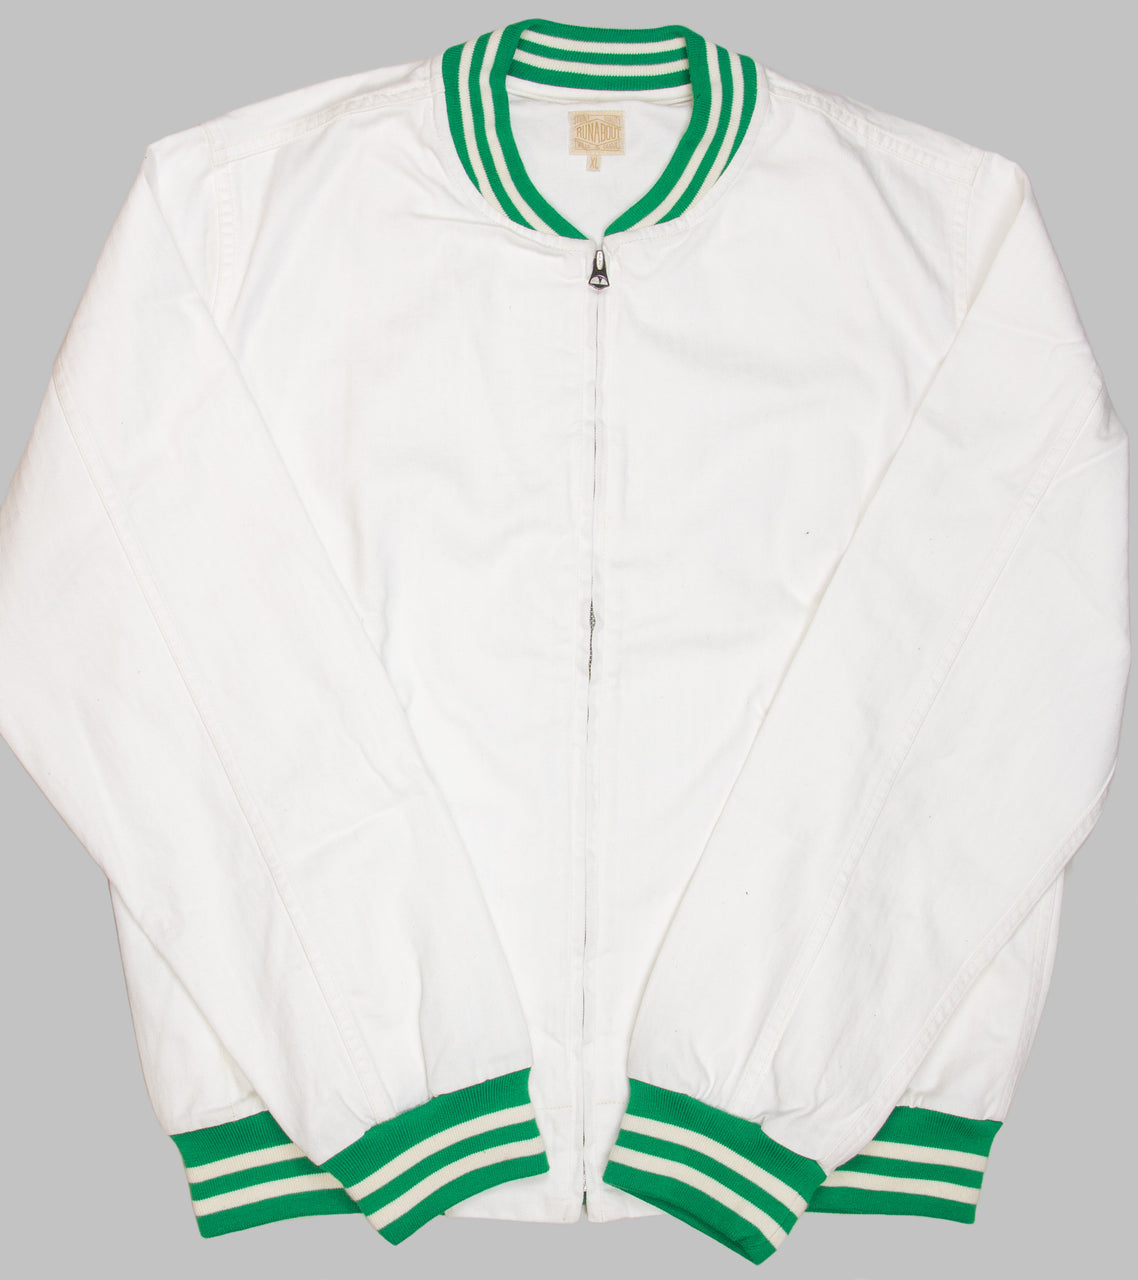 Runabout Stadium Jacket White